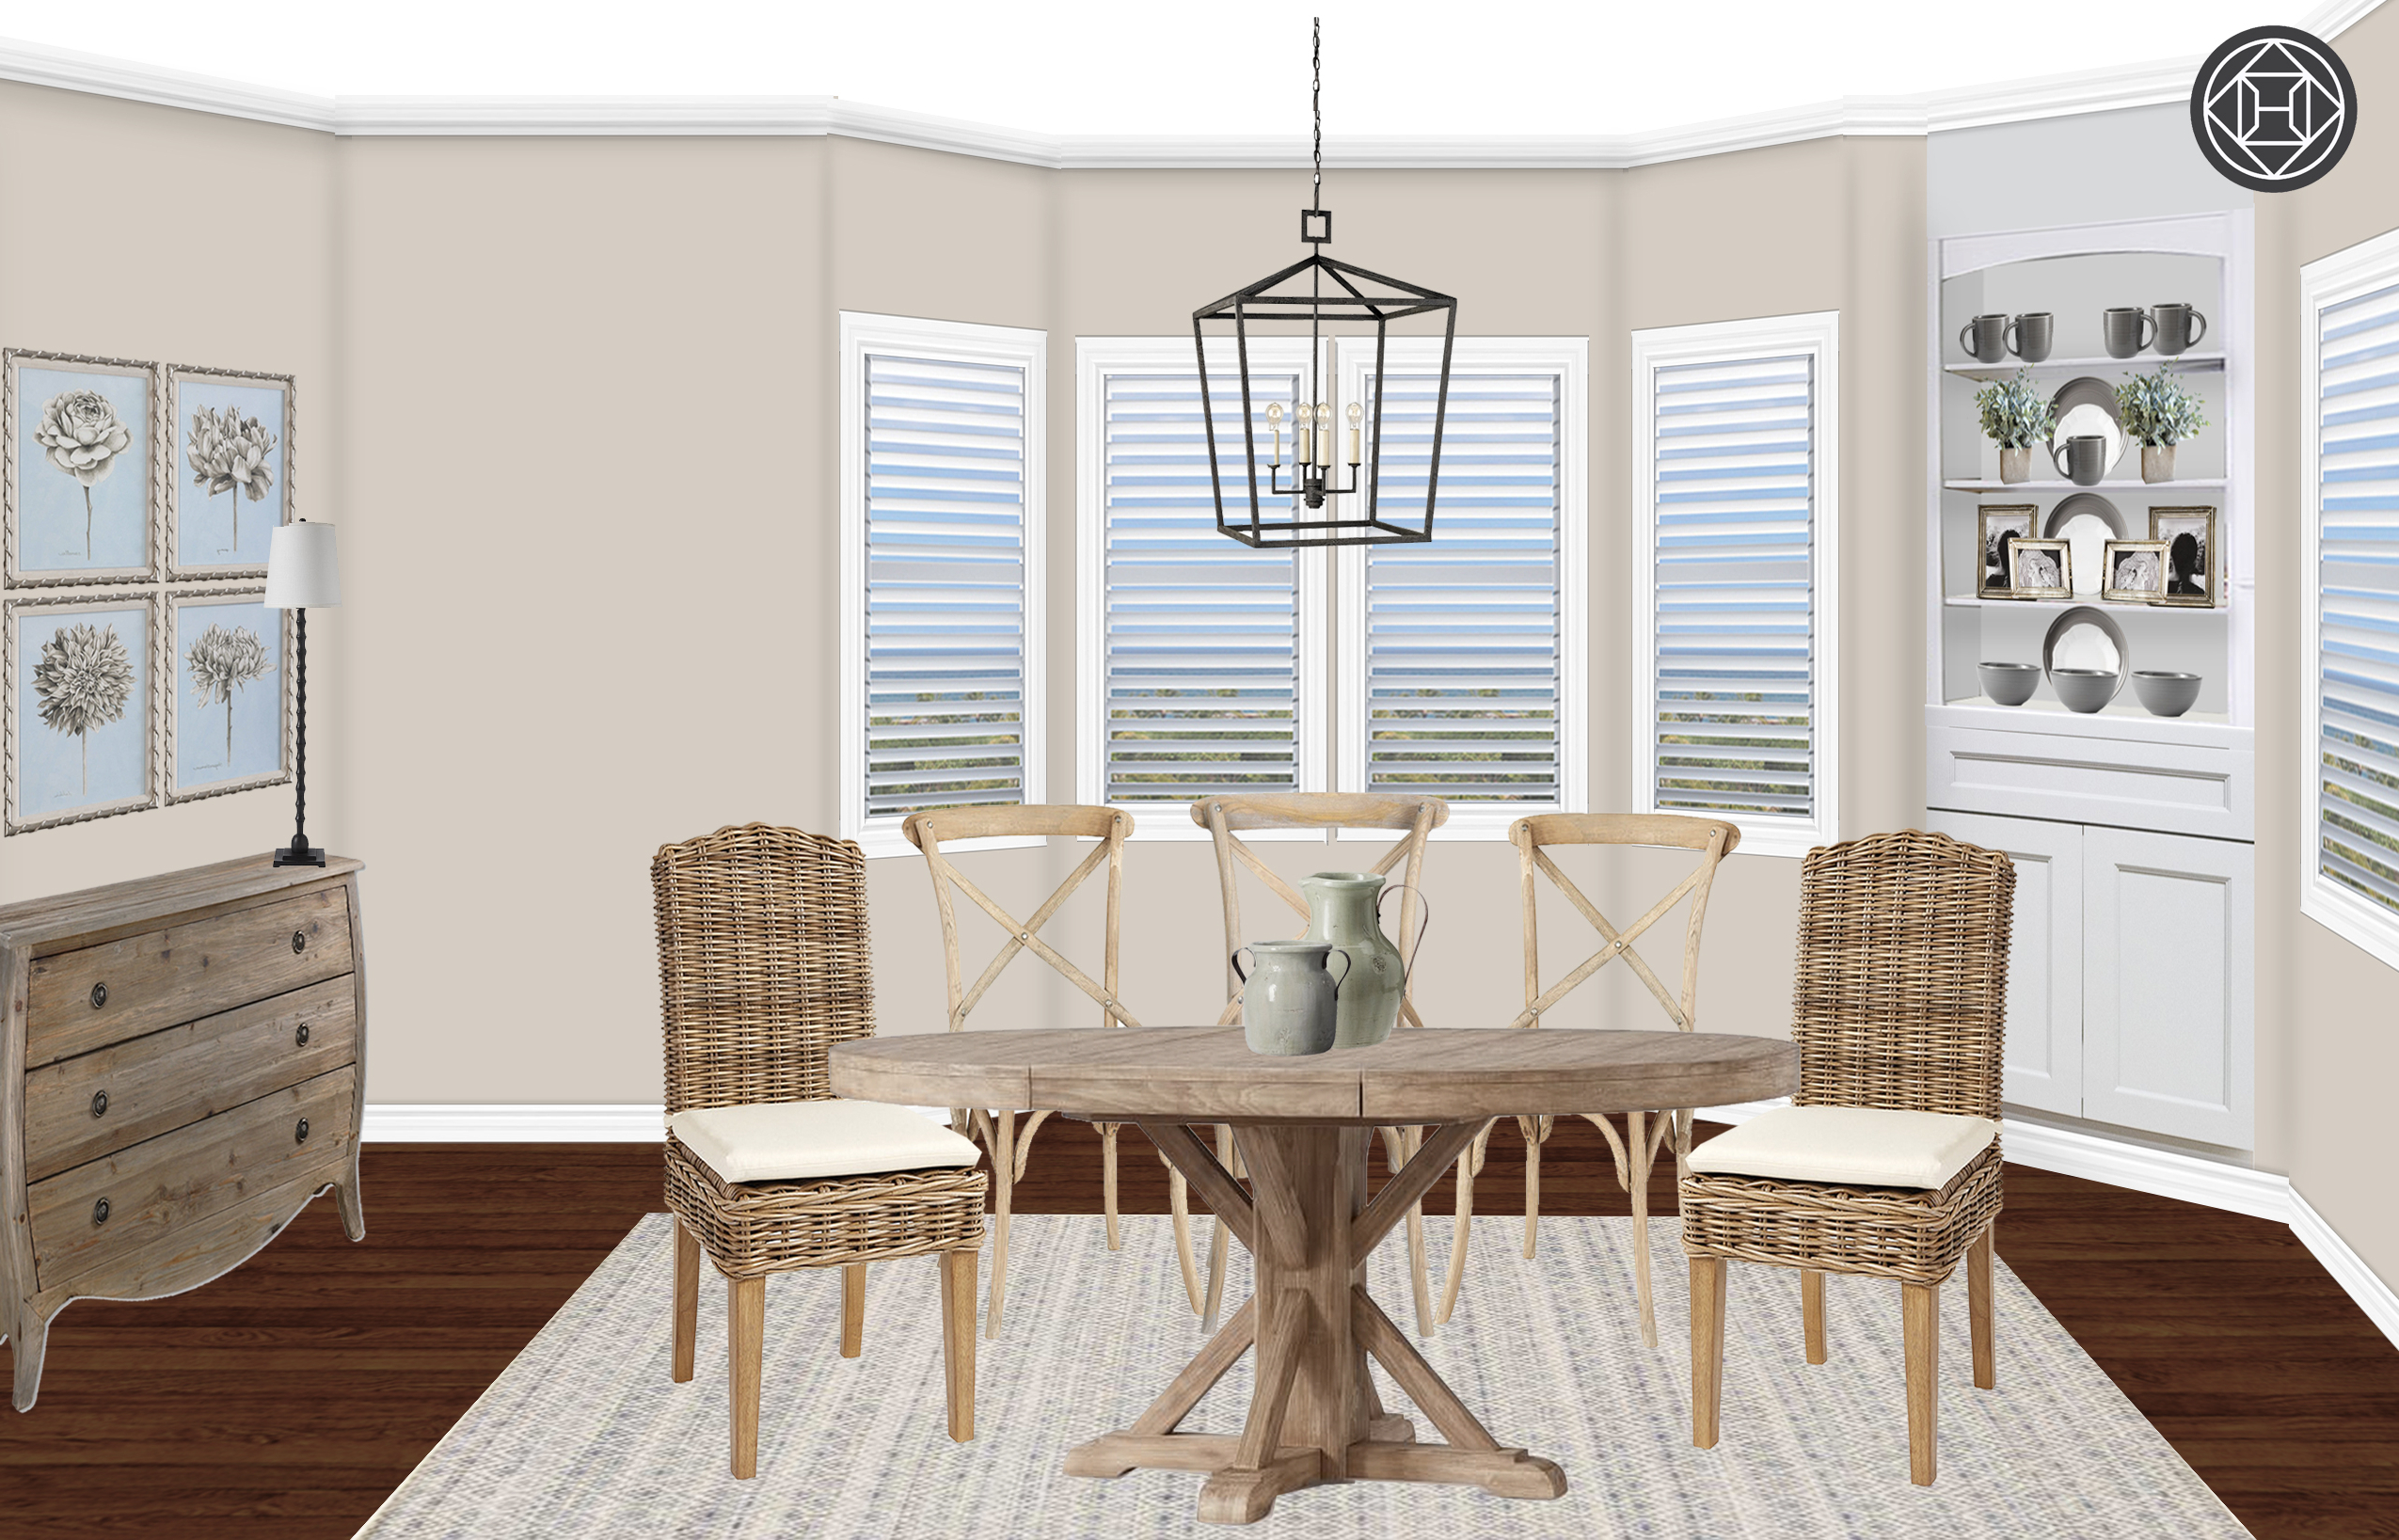 Most Recently Released Seadrift Banks Extending Dining Tables In Coastal, Traditional, Farmhouse Dining Room Design (View 13 of 25)